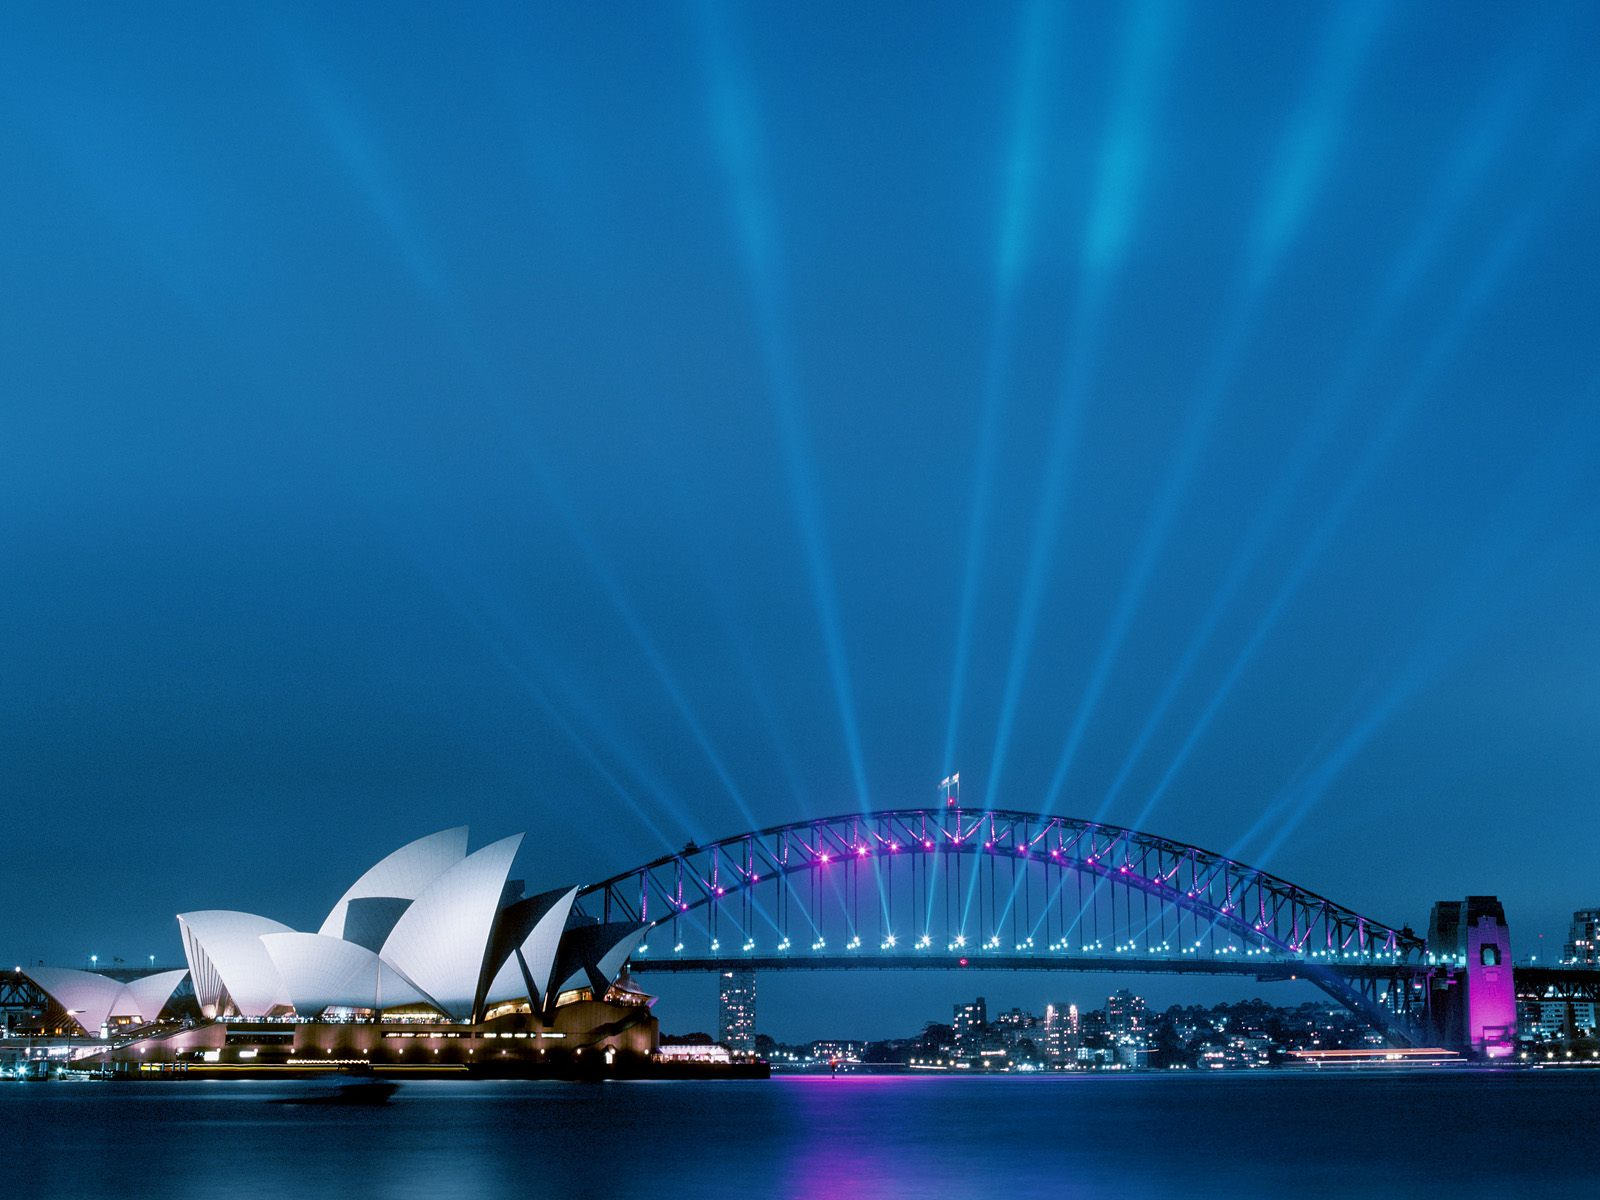 australia sydney opera house harbour bridge wallpapers beautiful desktop backgrounds facebook cover photos download